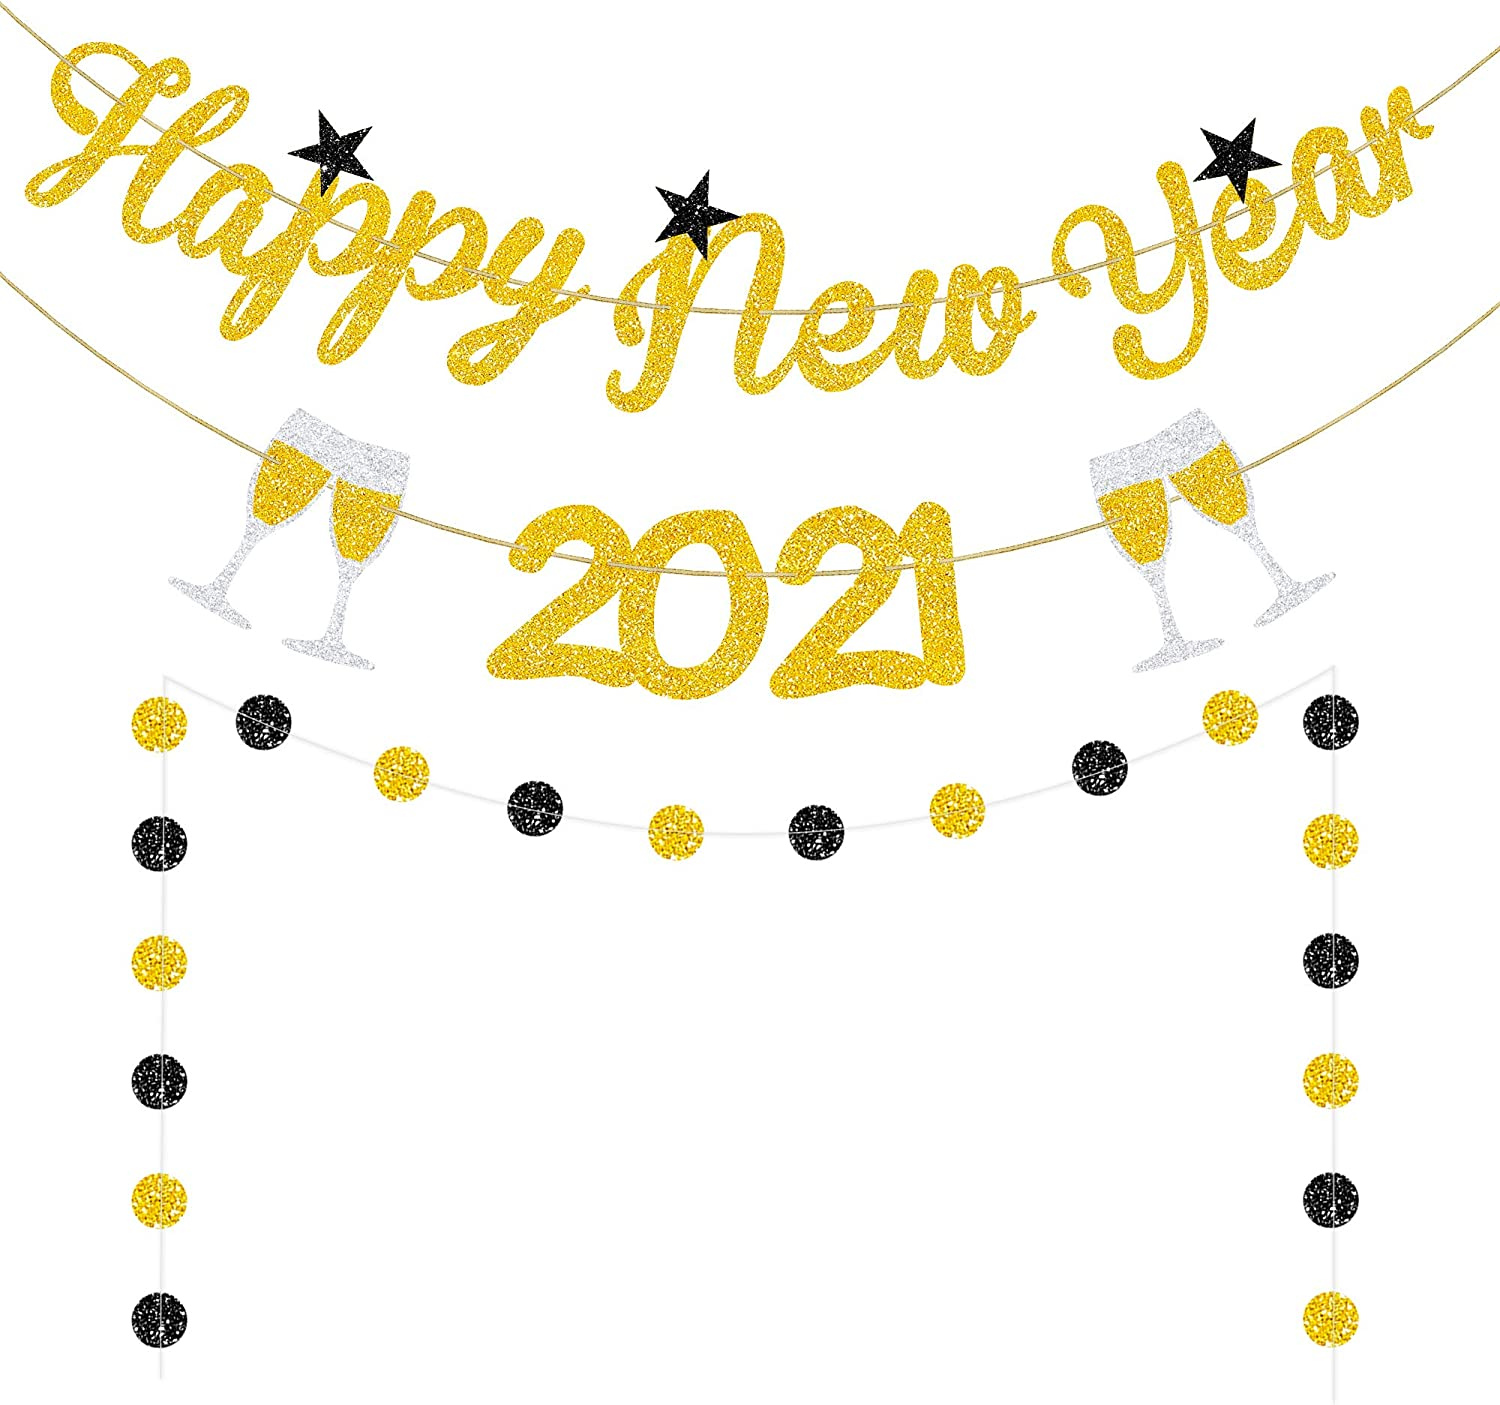 Happy New Year 2021 Banner Gold Glitter - 2021 New Year Party Decorations - 2021 New Years Eve Party Supplies Including Glitter Circle Dots Garlands - New Year Home office school Indoor Outdoor Hanging Decor